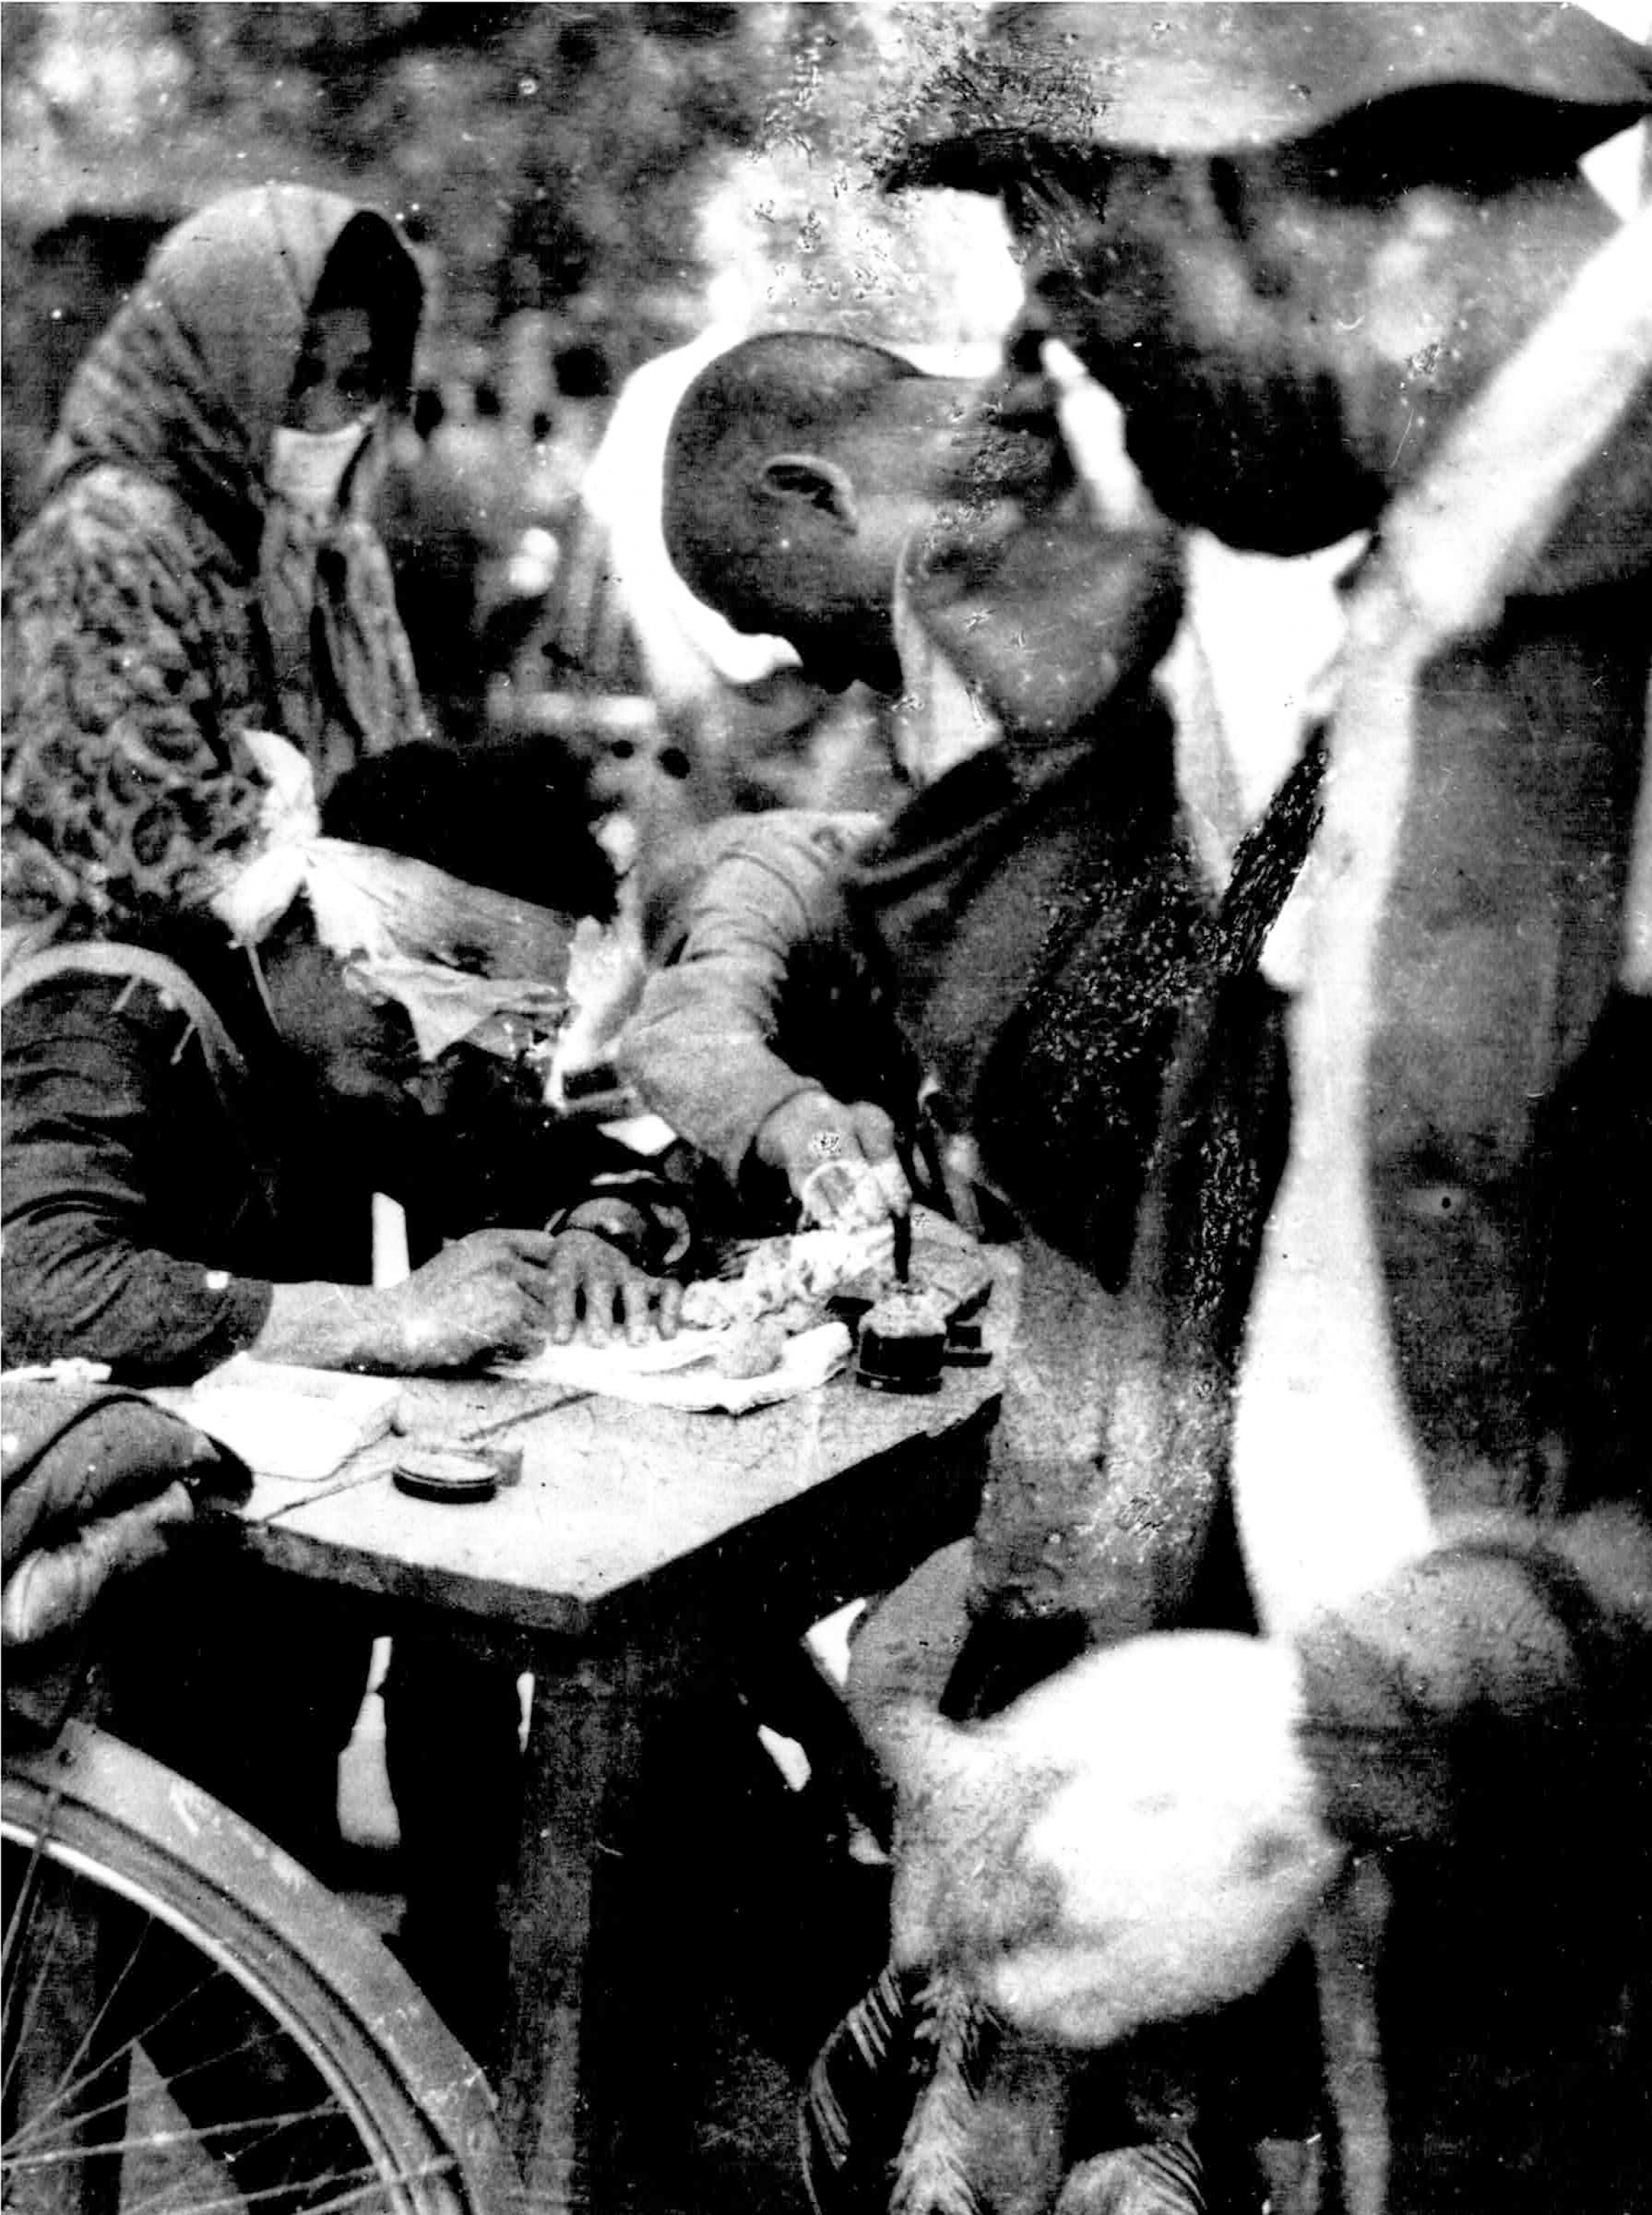 A police officer is shown sitting at a table while wearing a bandage on his head and writing on paper with several people standing around him.